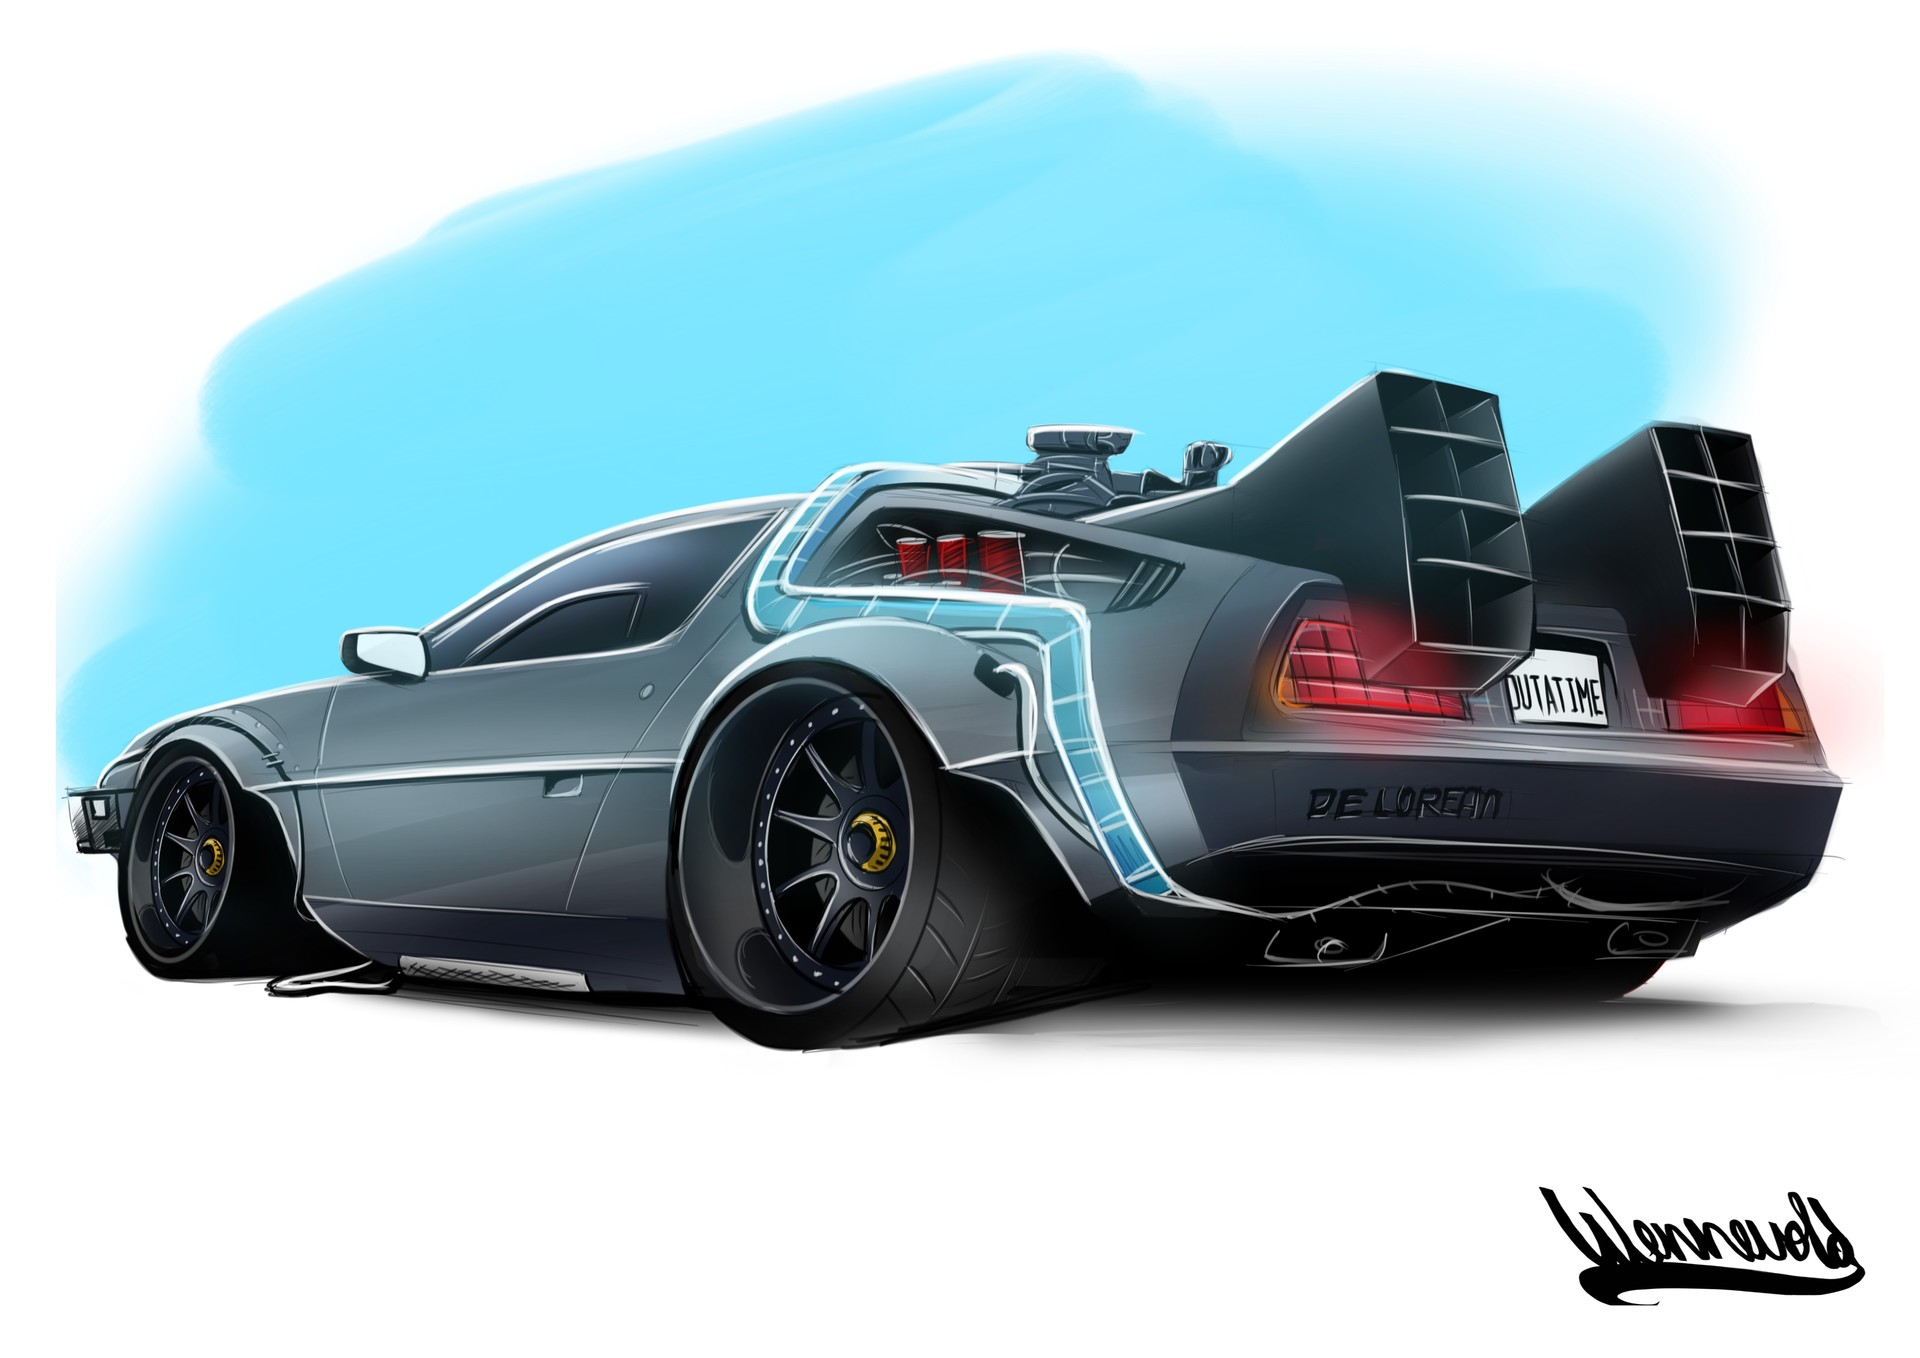 Andreas hoas wennevold bttf andreashoaswennevold